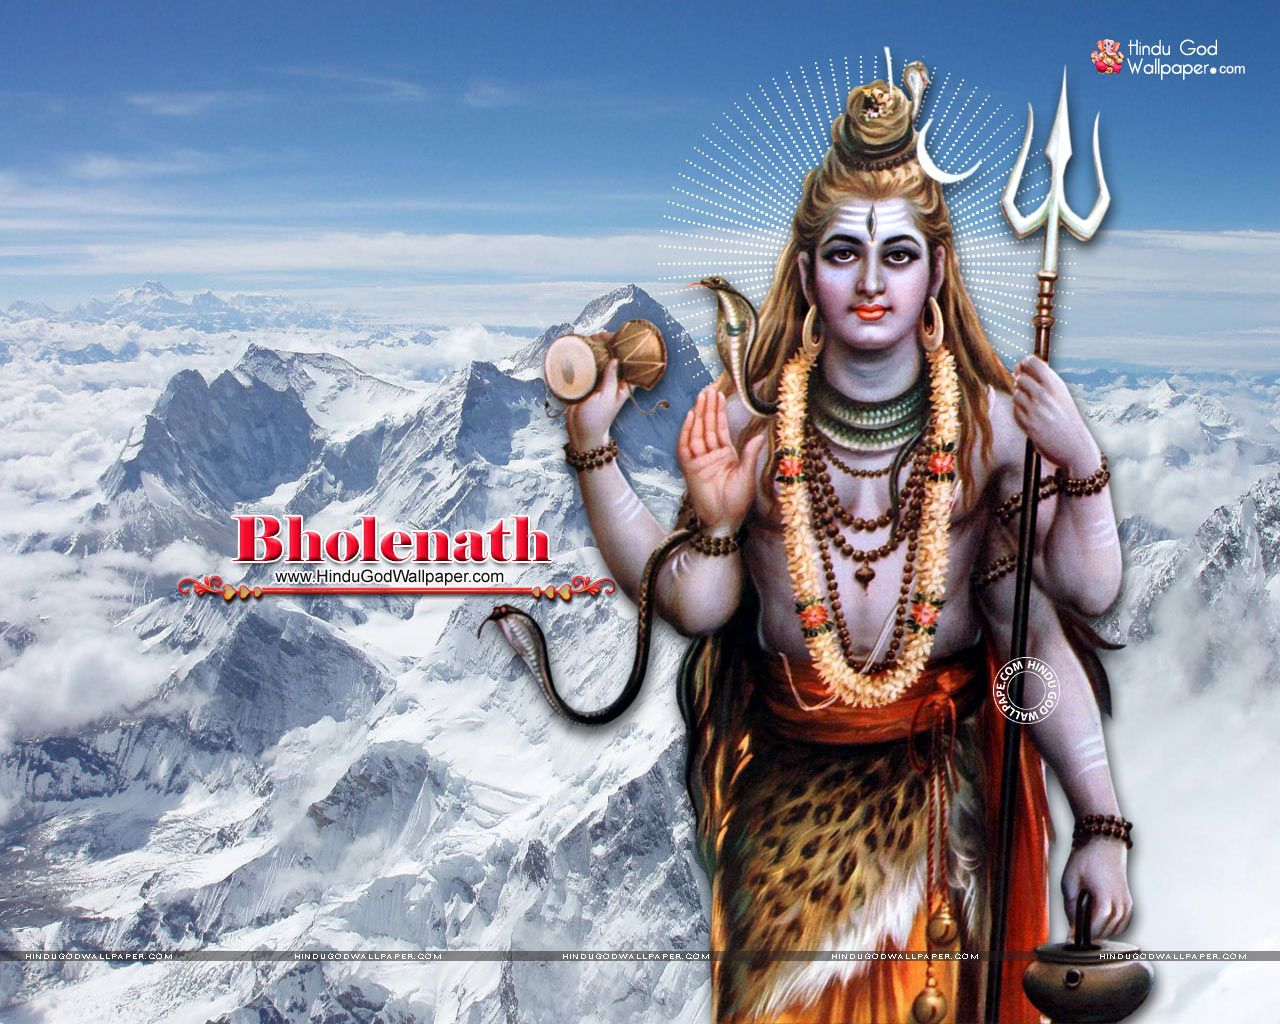 bholenath hd wallpapers, images, photos free download | shiv shakthi